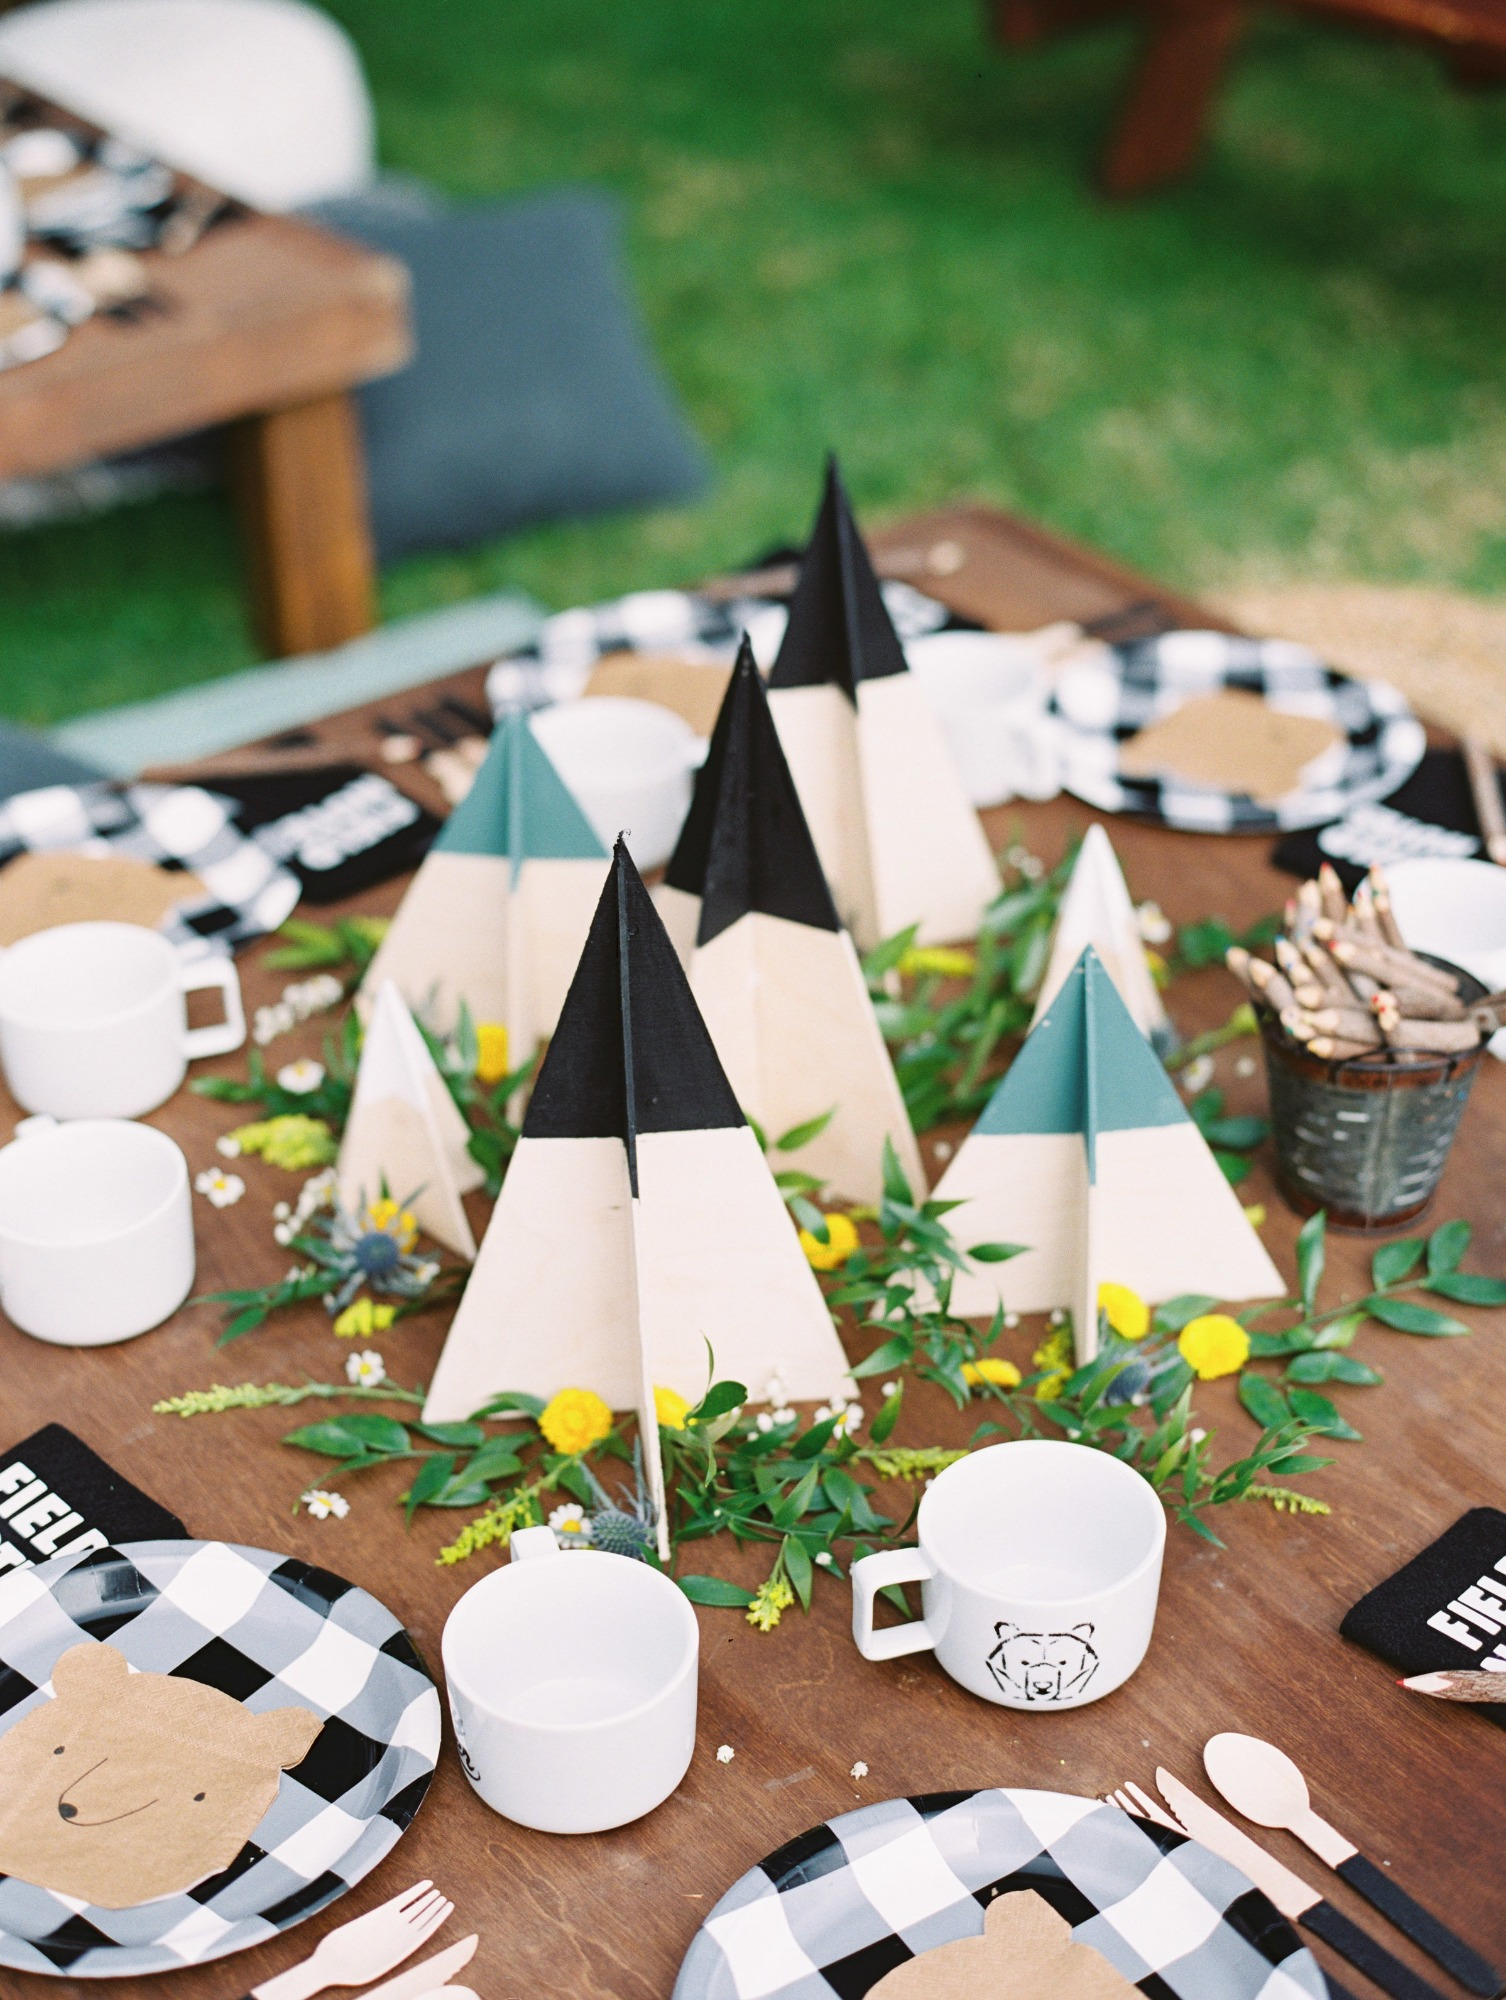 Pine Tree Decor from Classic Camping Birthday Party Styled by Deets & Things | Black Twine